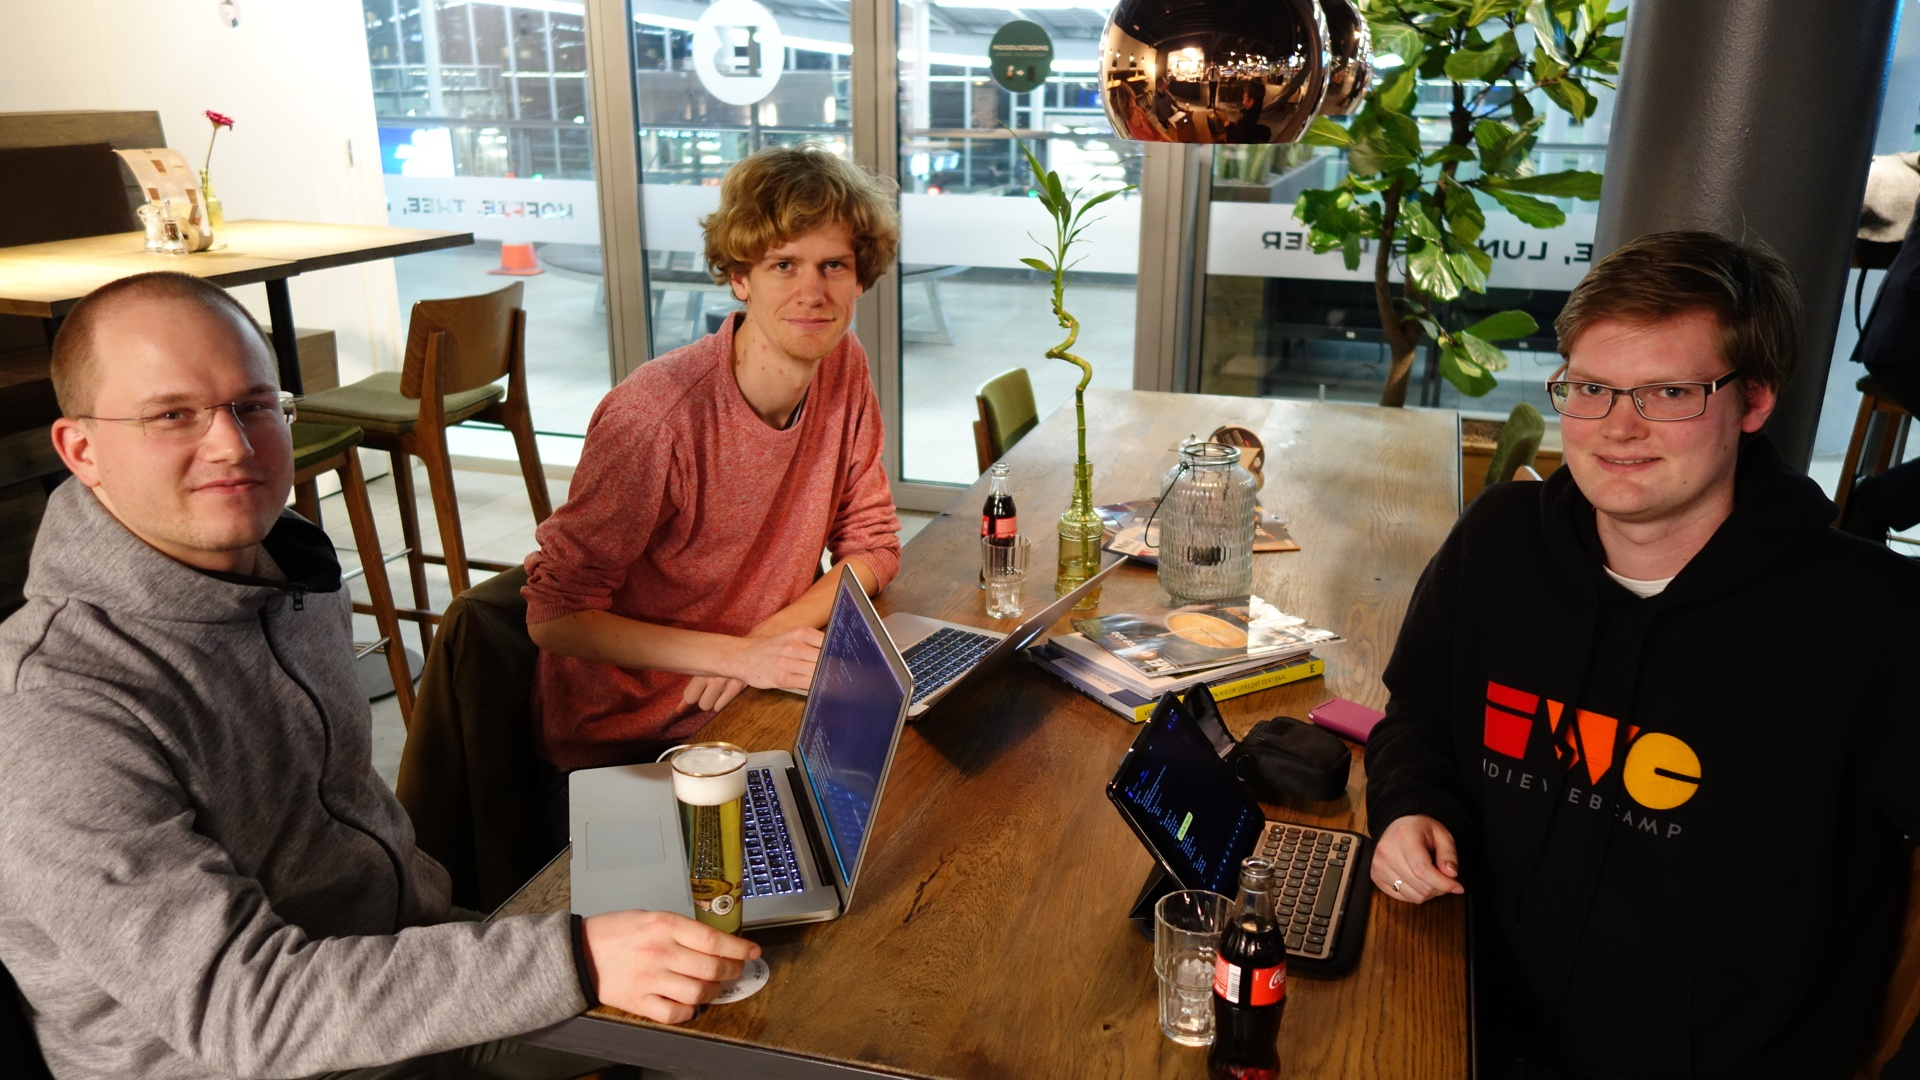 Photo of Homebrew Website Club the Netherlands with Jesse, Sebastiaan, and Martijn